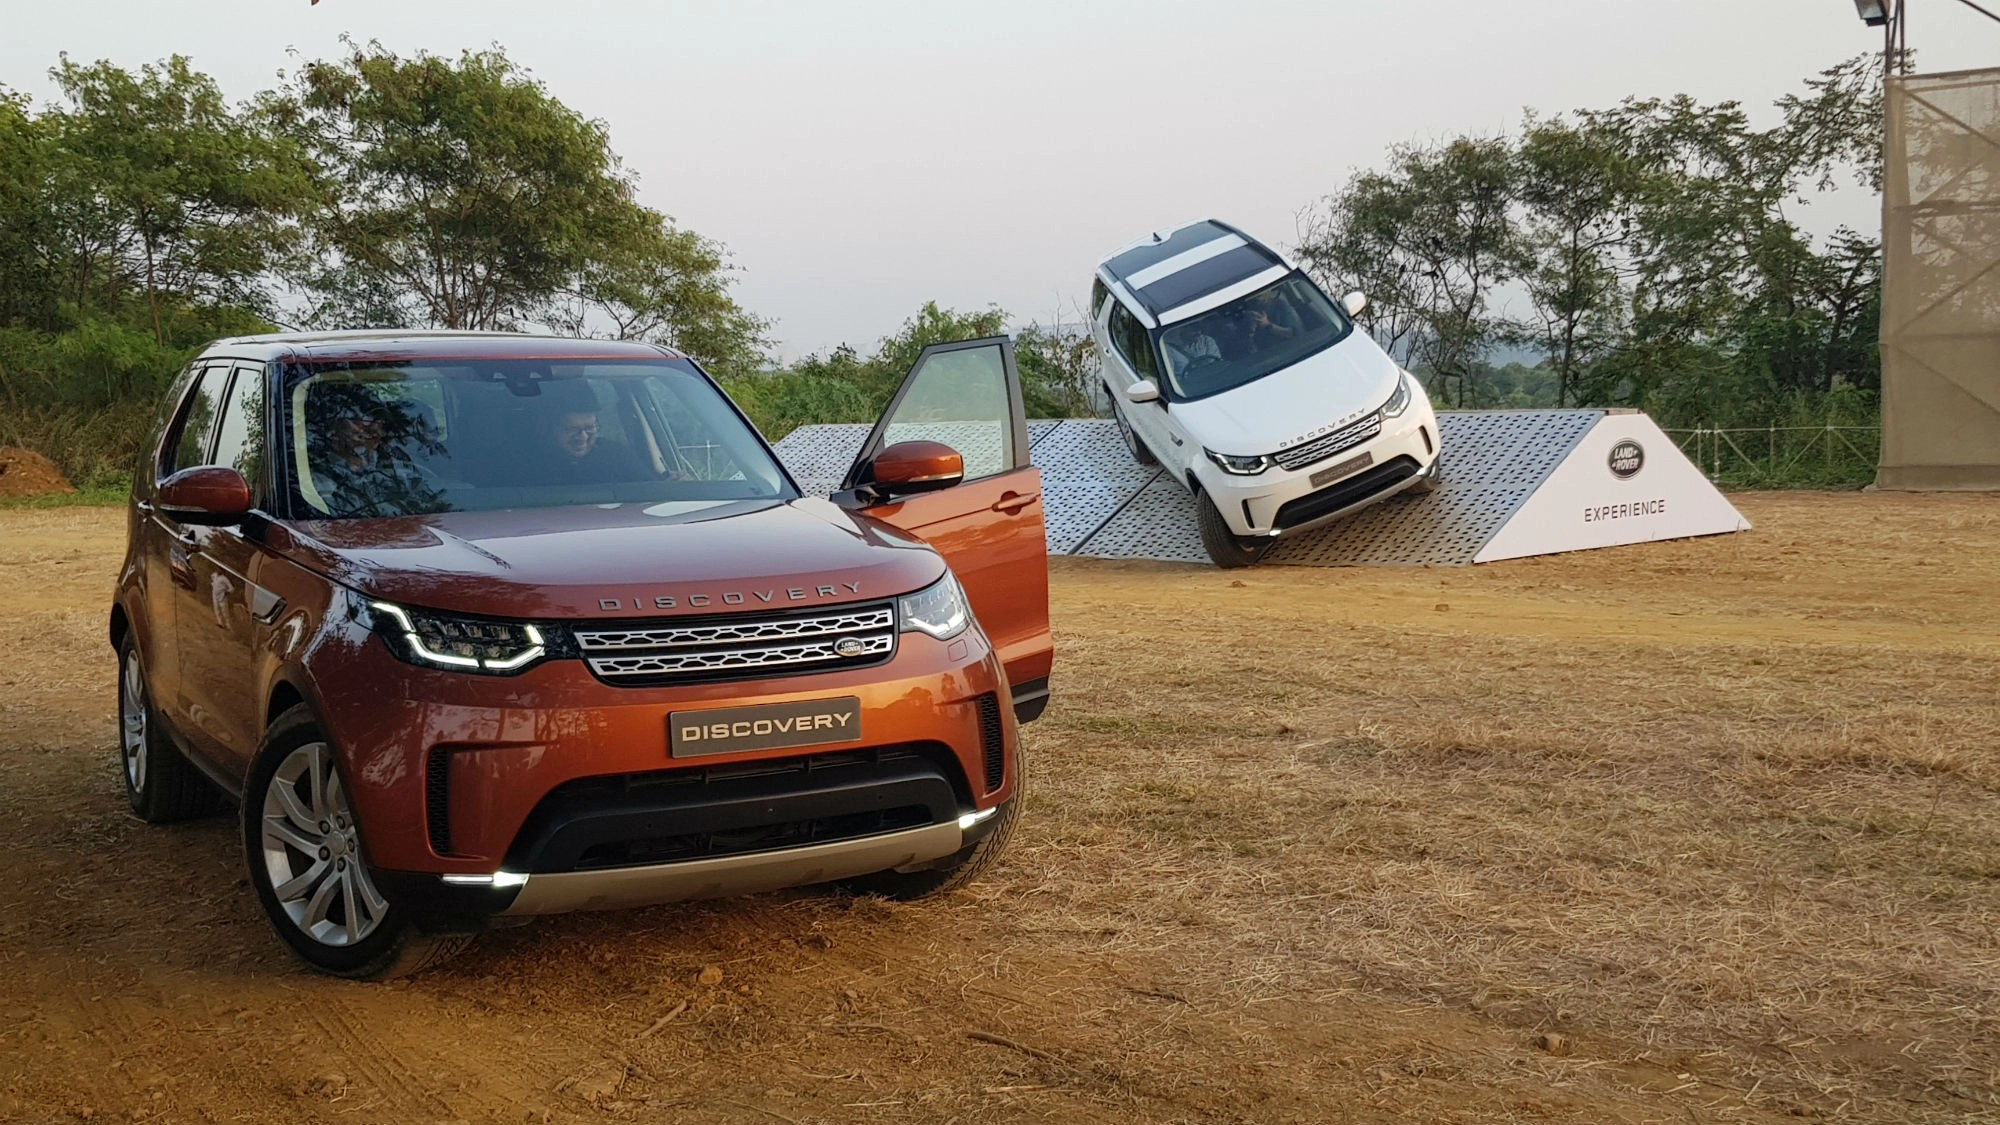 Jaguar Land Rover Unleashes the 7 Seater Discovery in India The